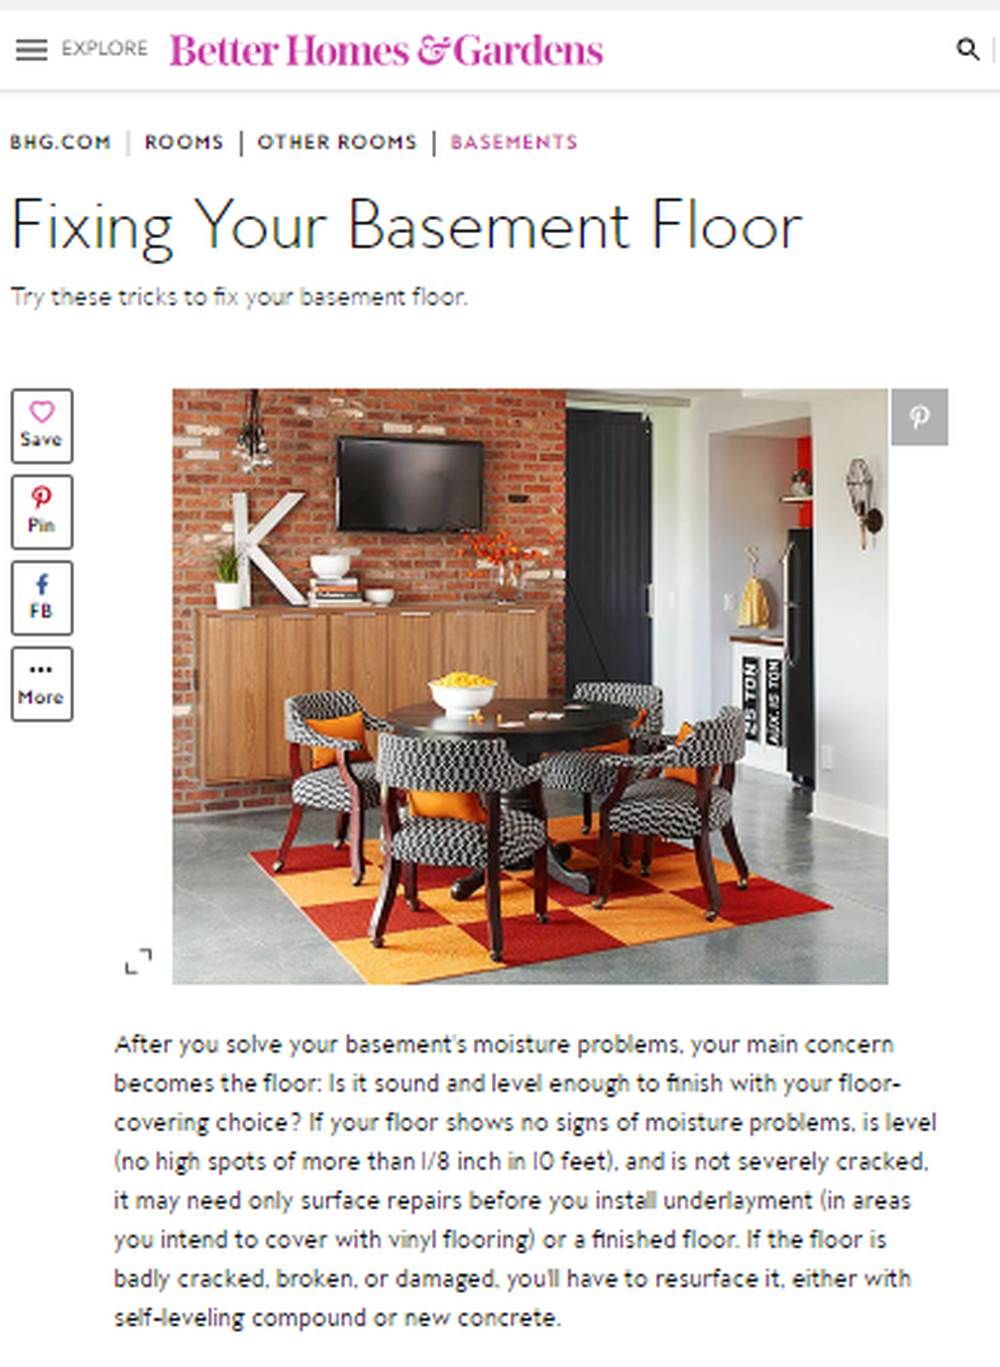 Fixing Your Basement Floor   Better Homes   Gardens.png